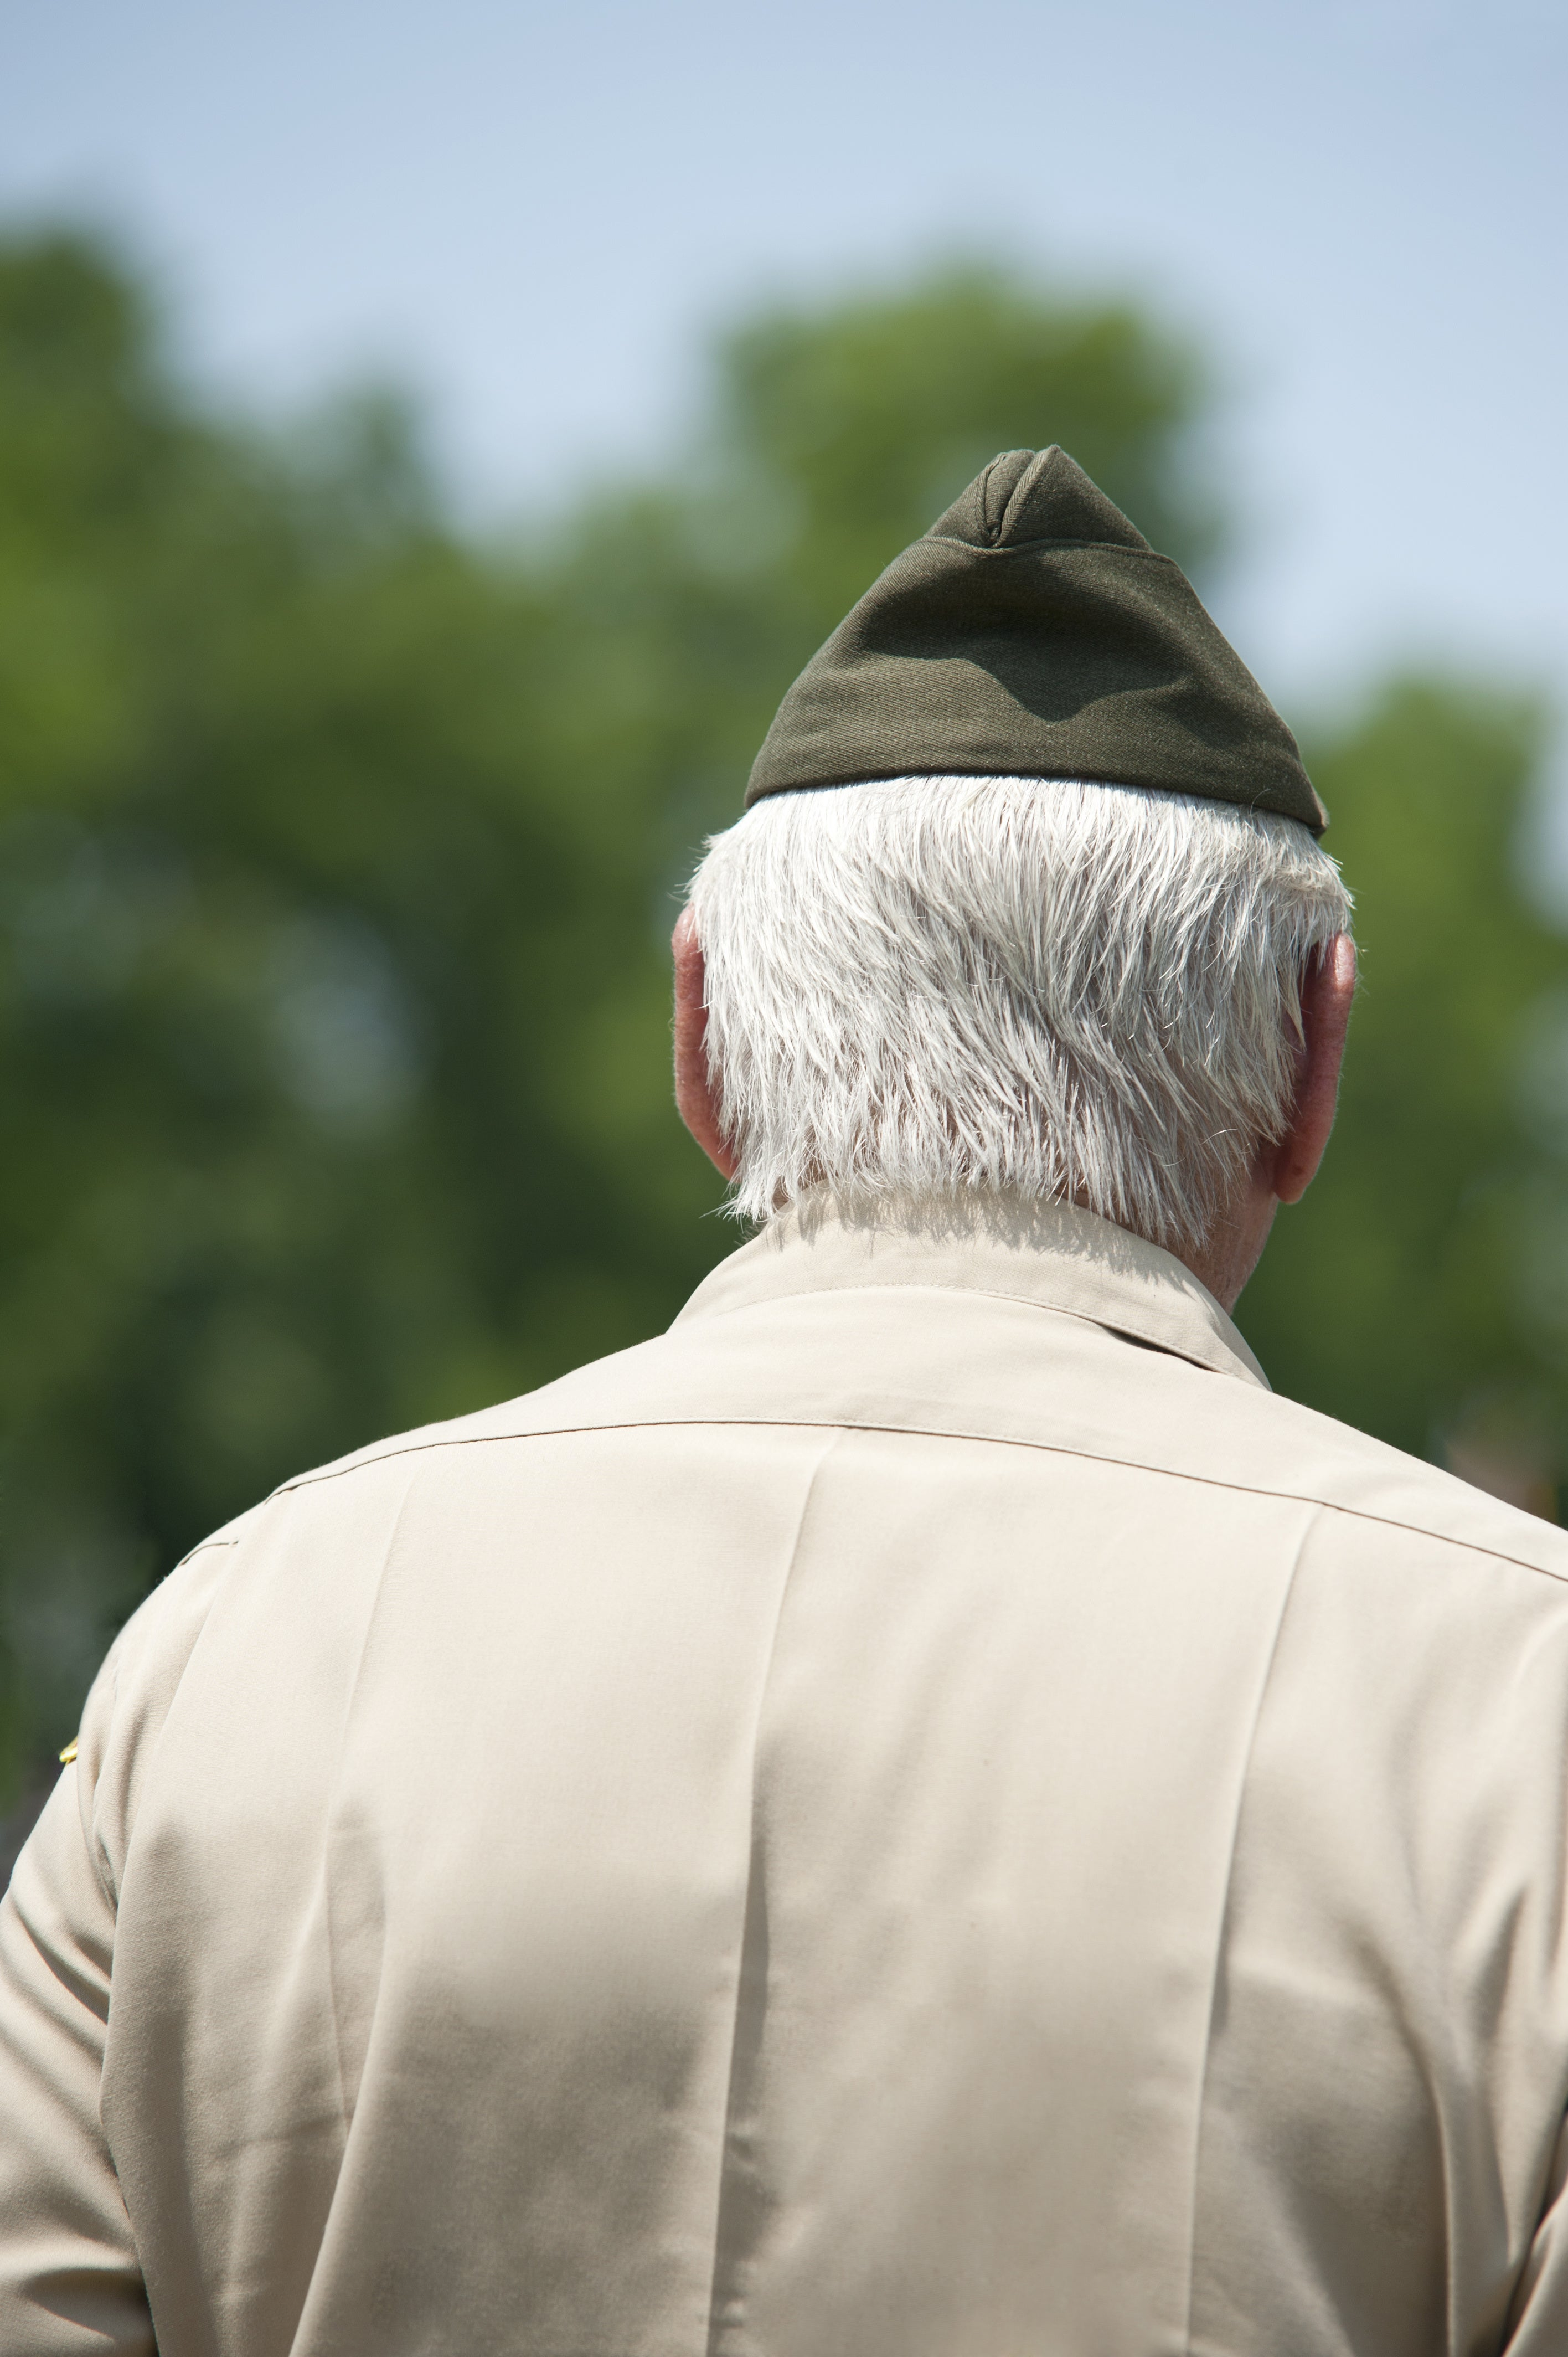 An elderly US Army Veteran at a Memorial Day Ceremony, back view with shallow depth of field